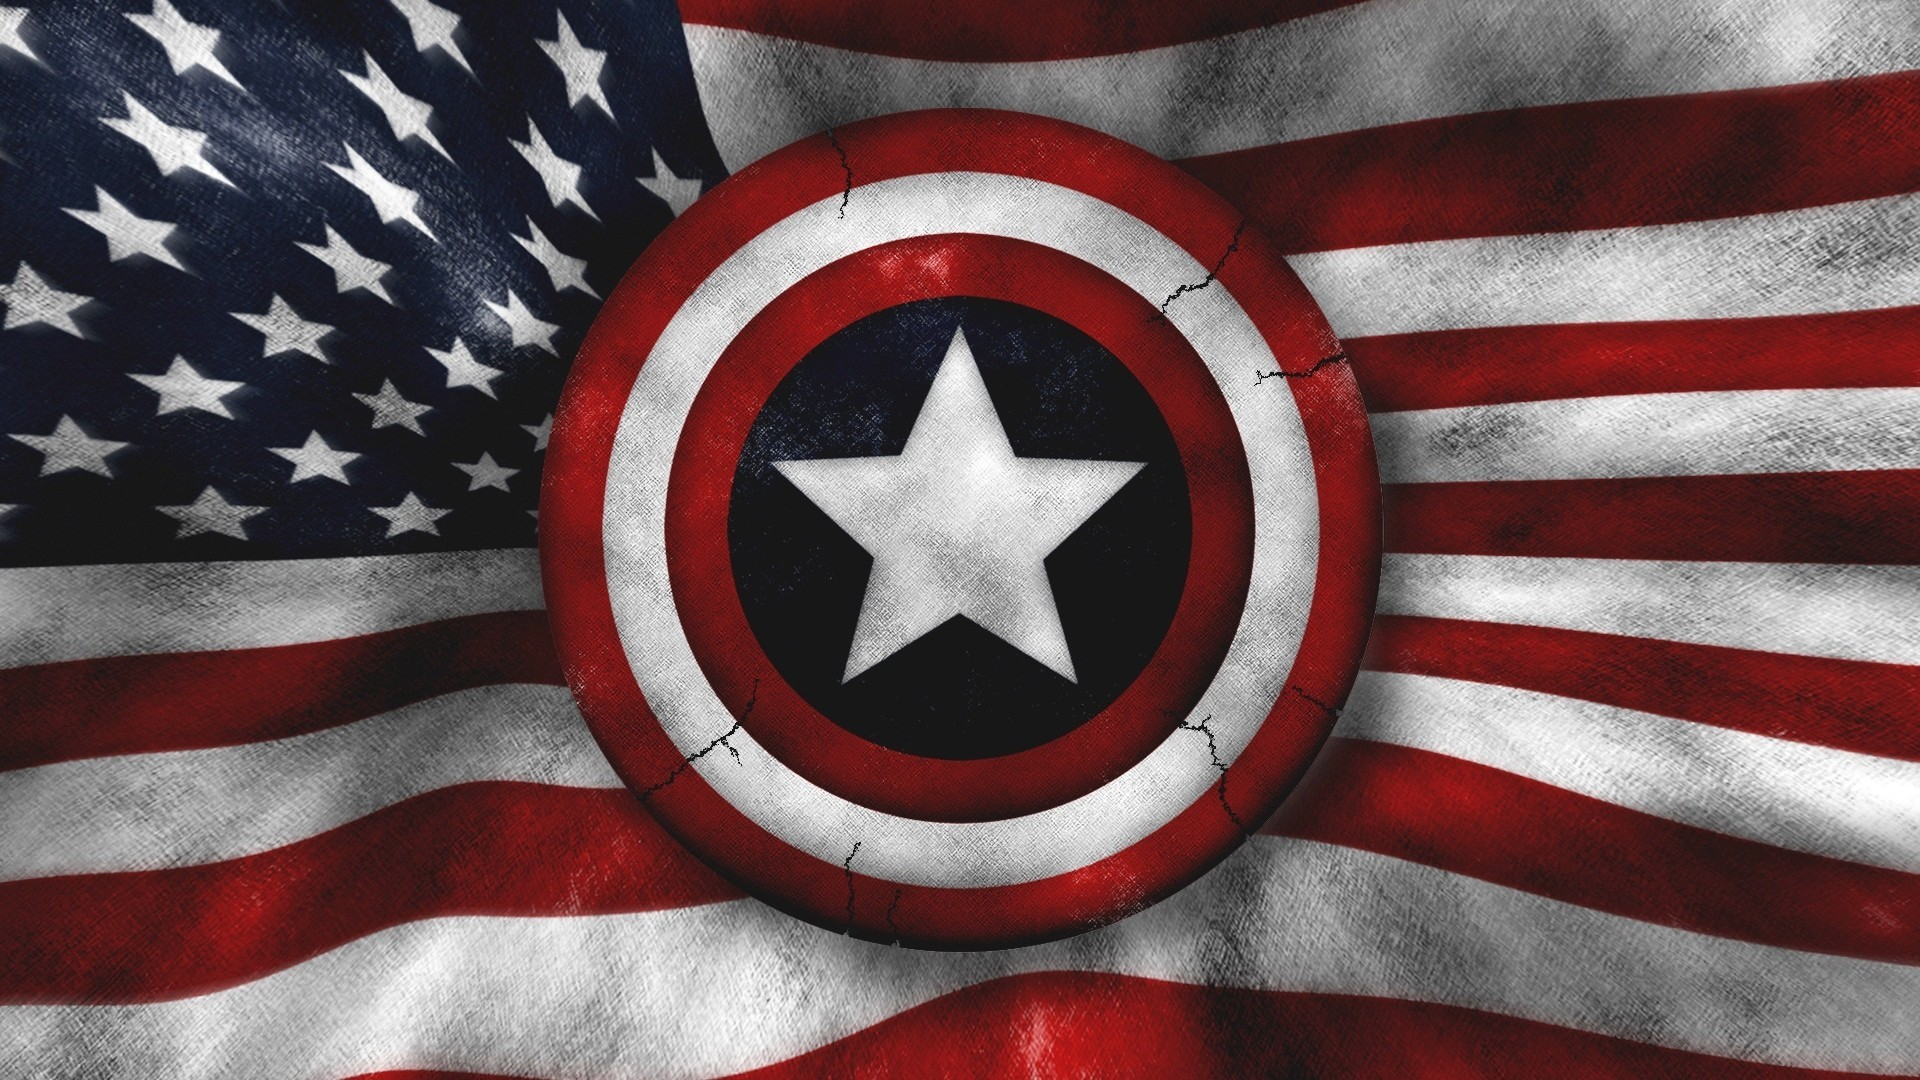 Army military Captain America flags US Army wallpaper     191318    WallpaperUP